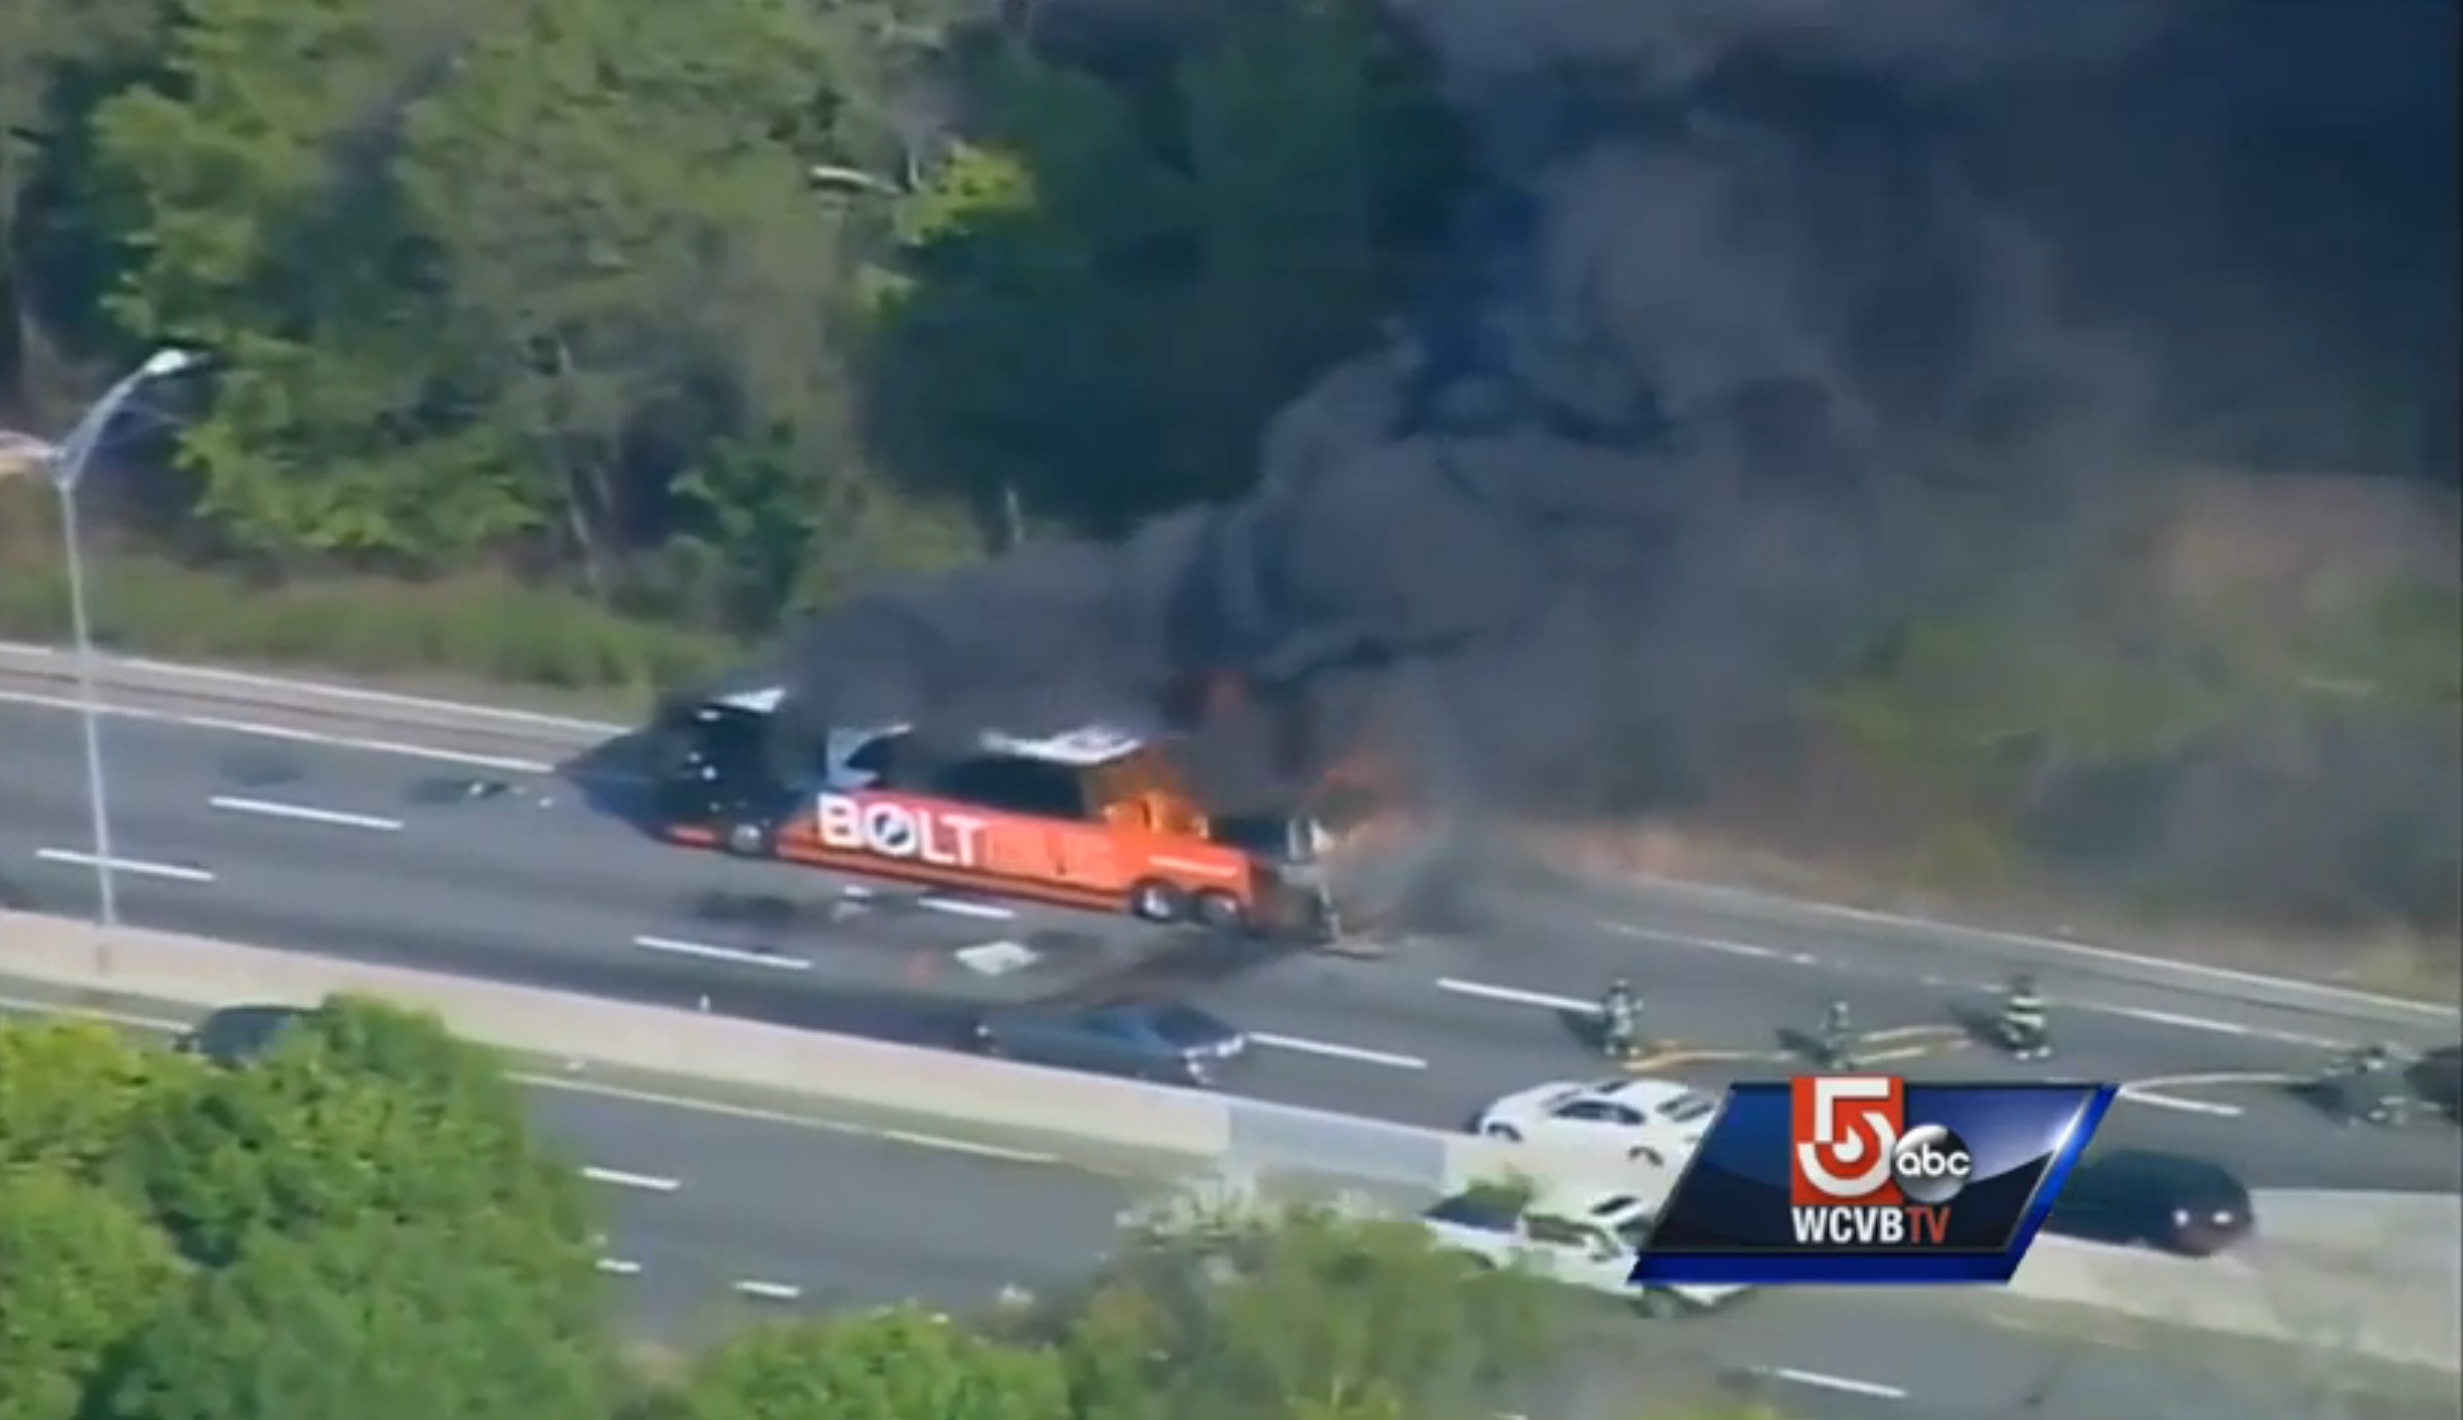 Bolt Bus Near Boston Explodes, Engulfed In Flames